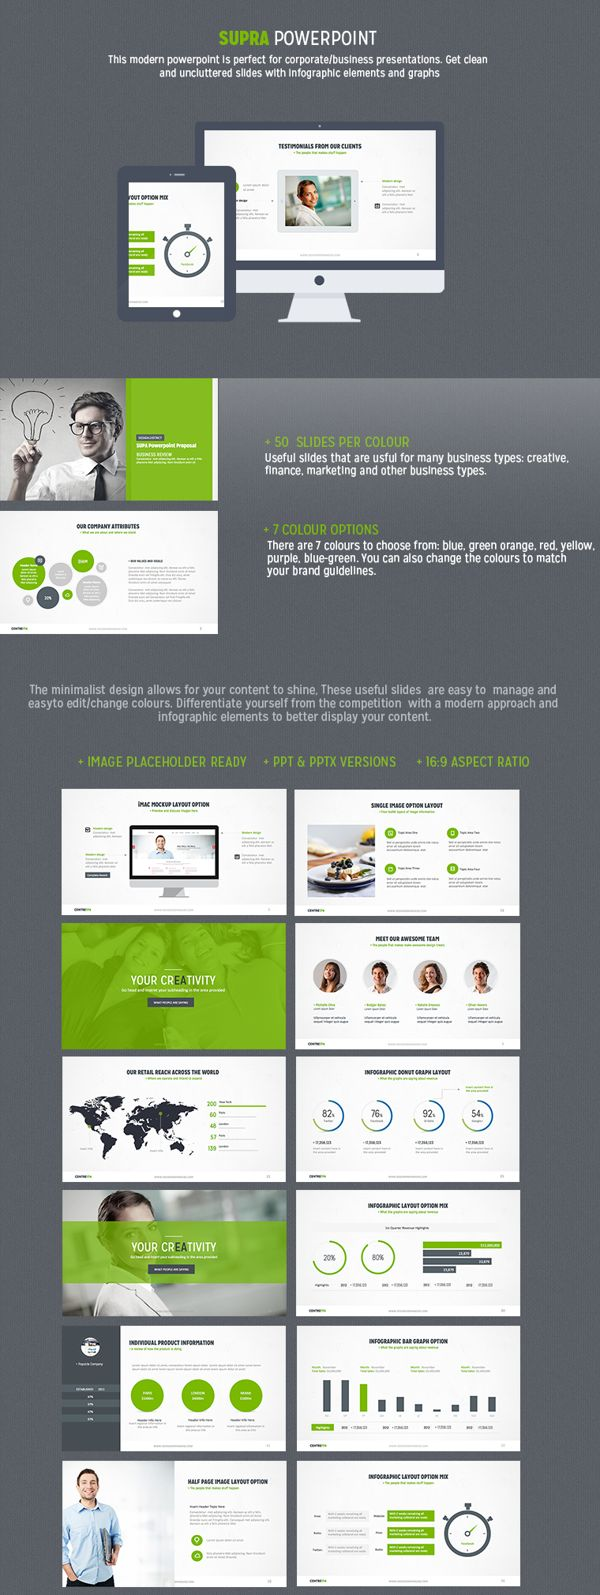 Best 111 Presentation | Design ideas on Pinterest | Presentation ...